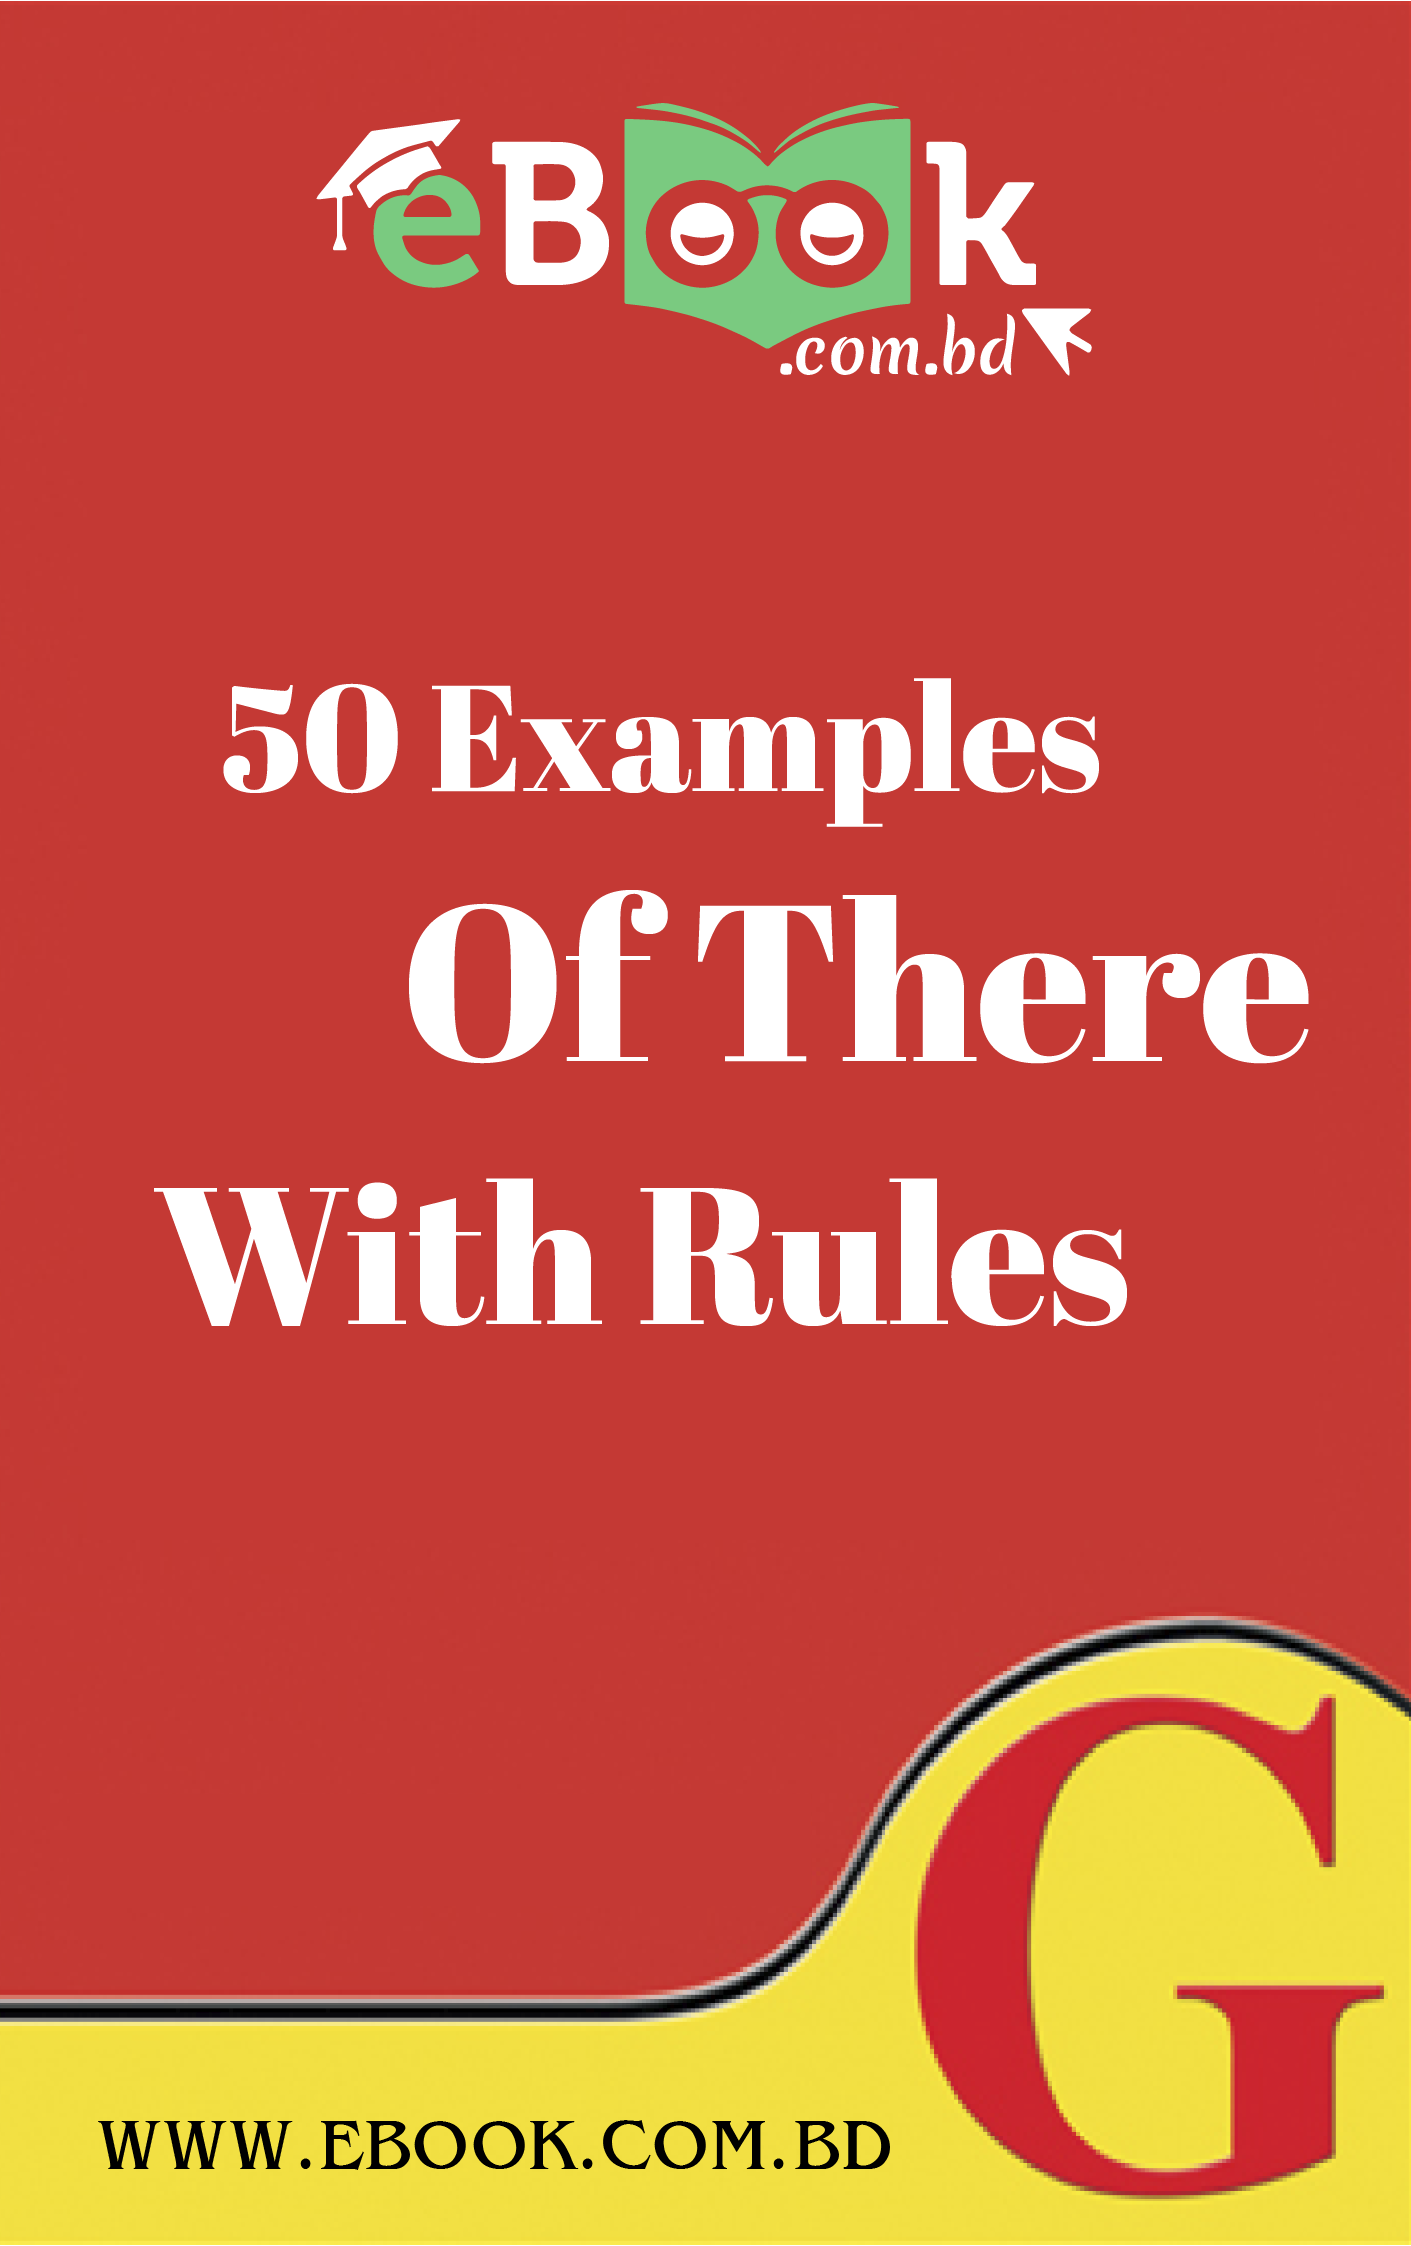 Thumbnail of 50 Examples Of There With Rules